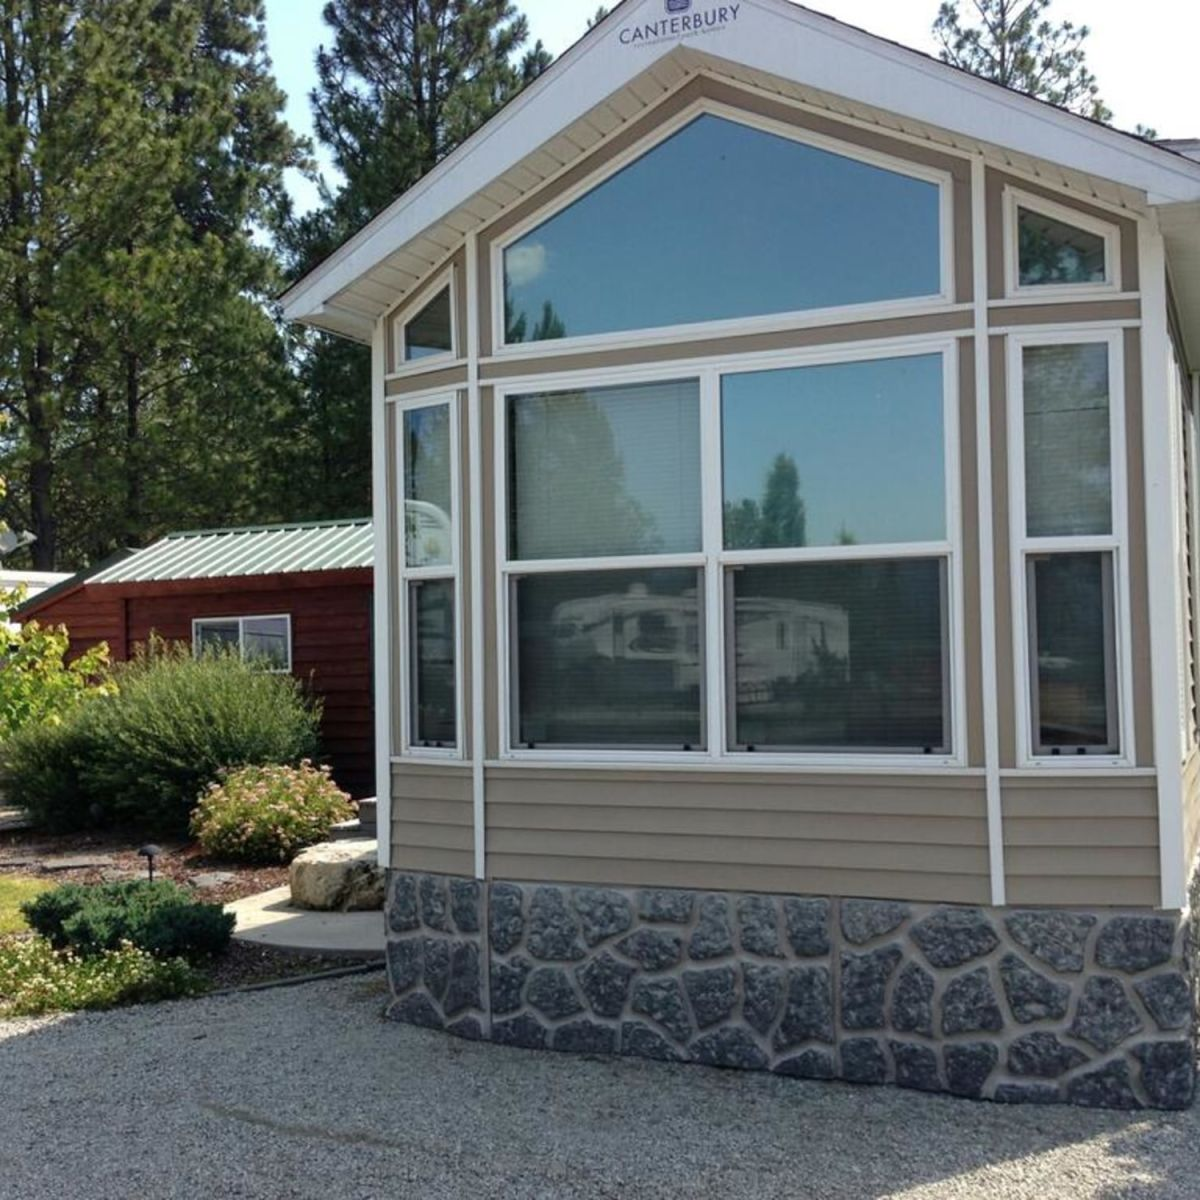 Park Model For Sale In Washington State 399 Sq Ft Tiny